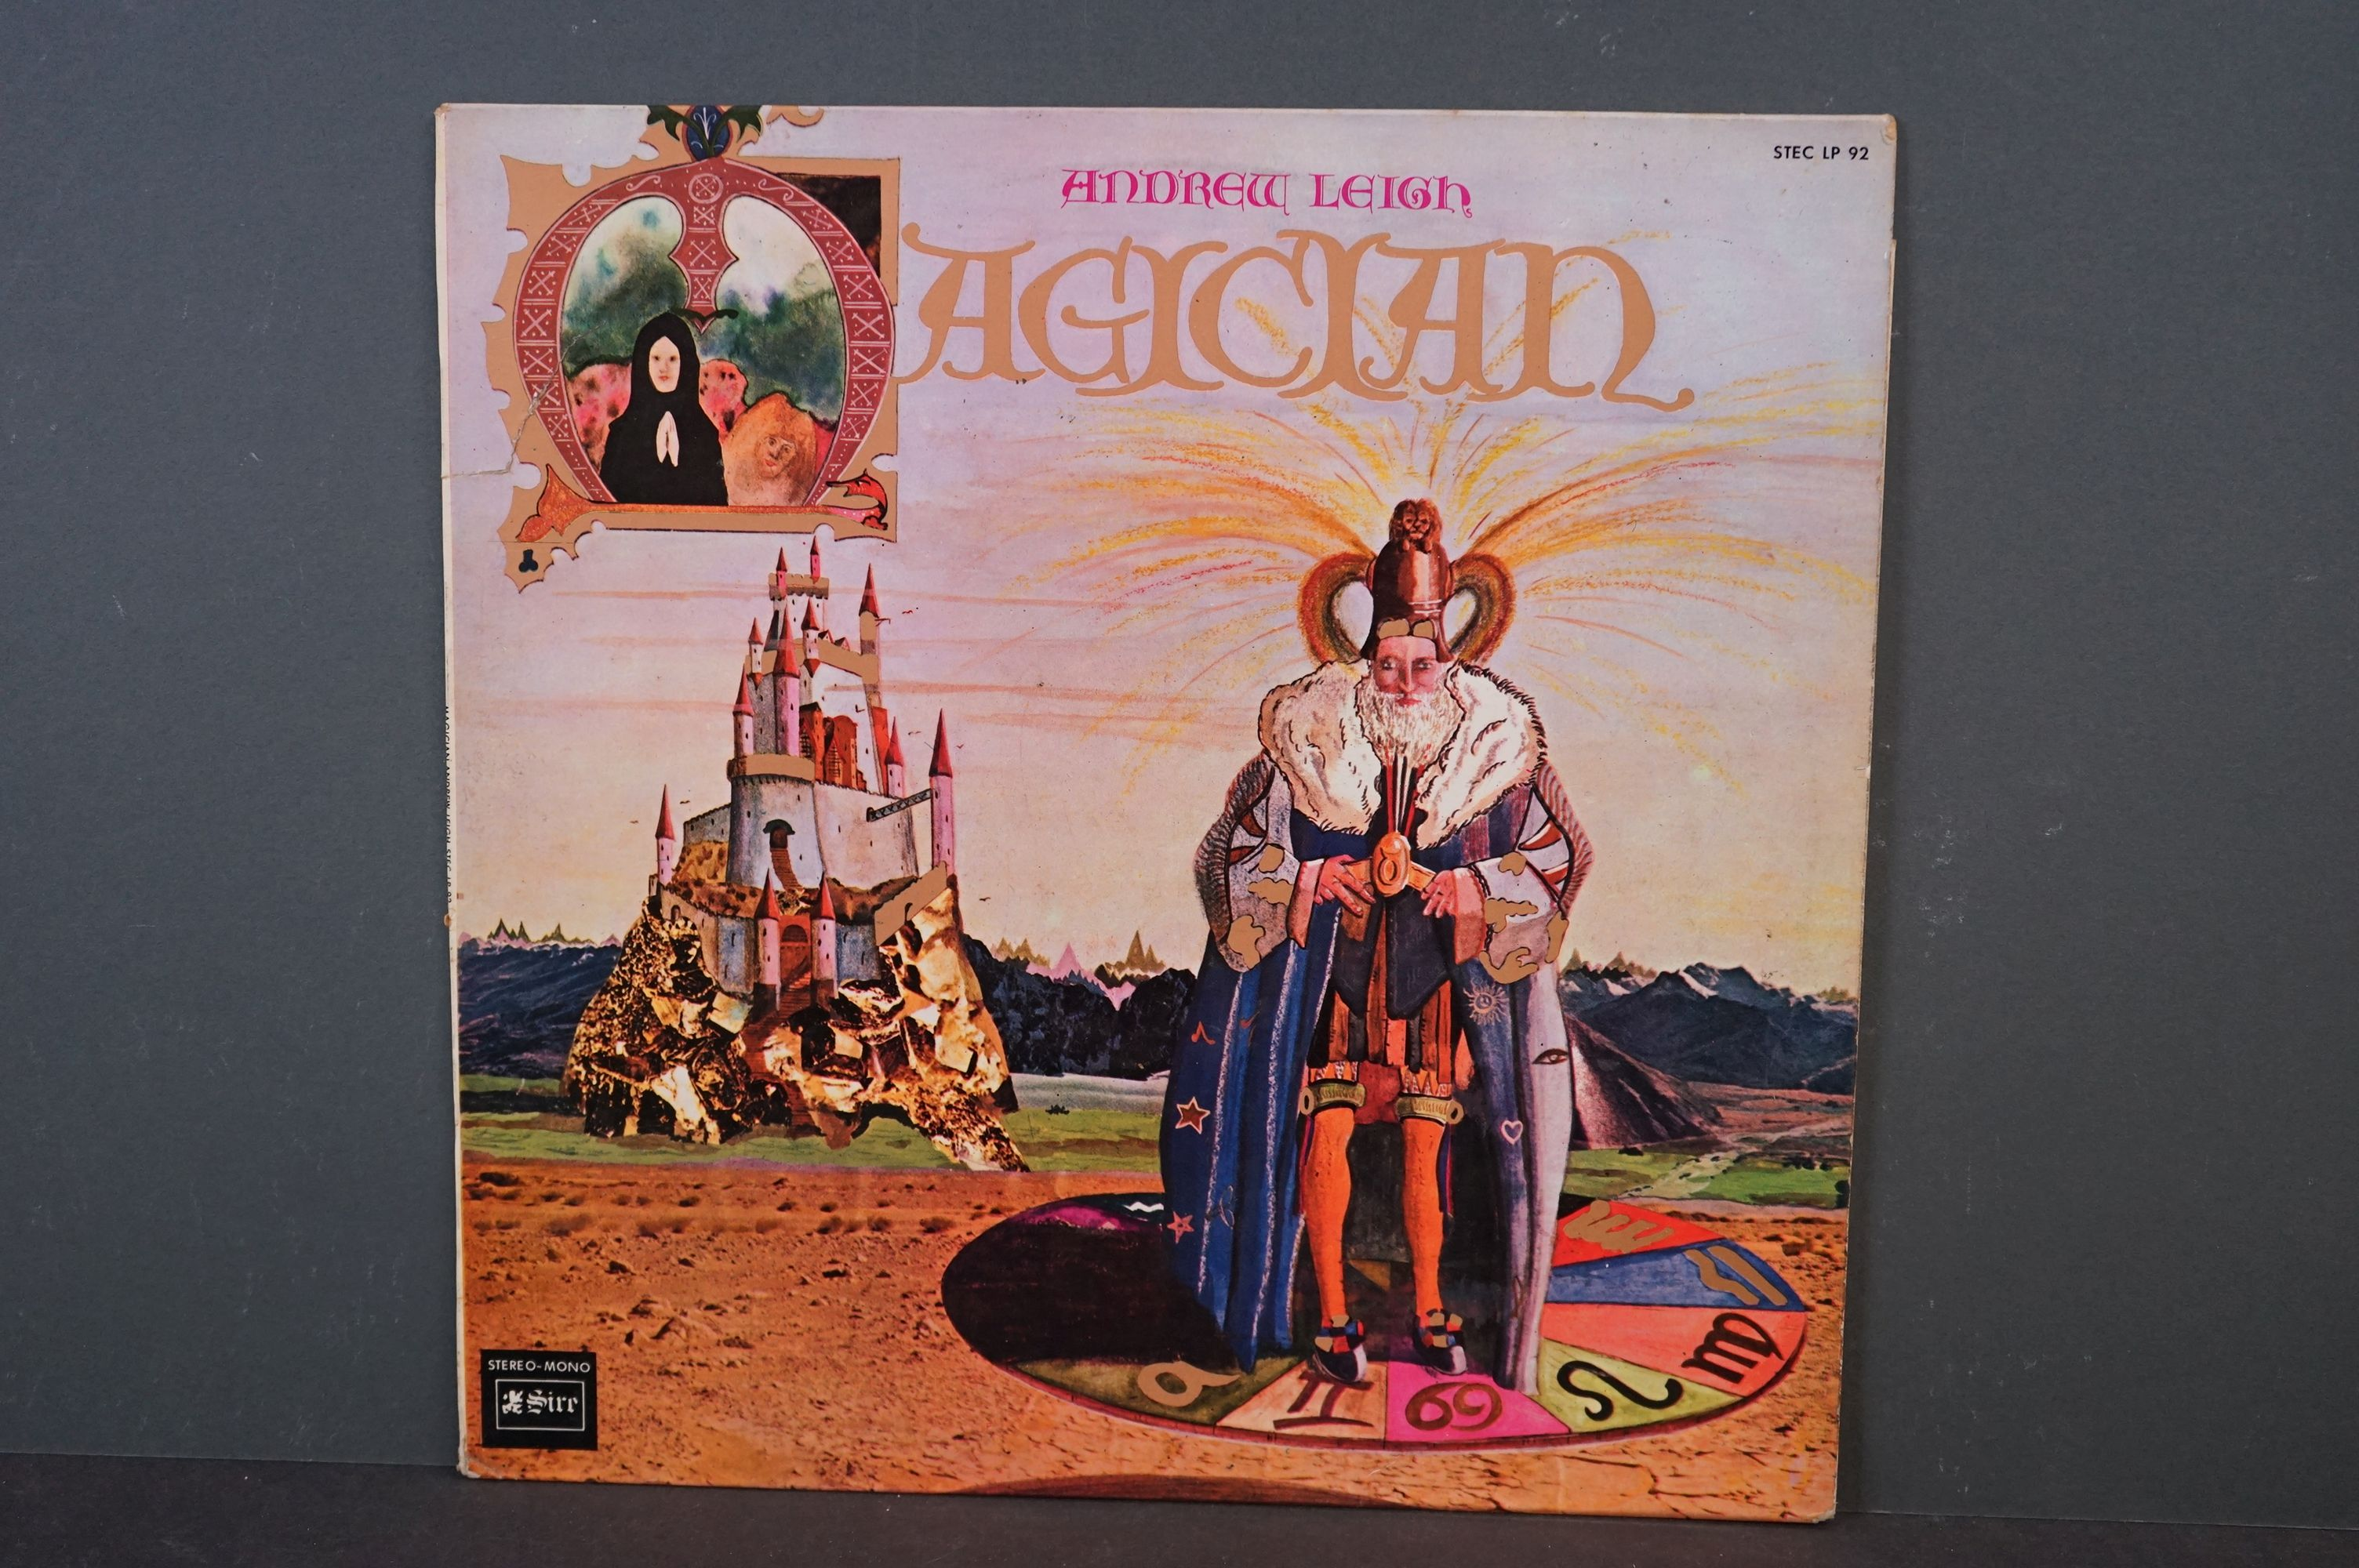 Vinyl - Psych / Acid Folk - Andrew Leigh - Magician. 1970 French 1st Pressing, Sire Records,